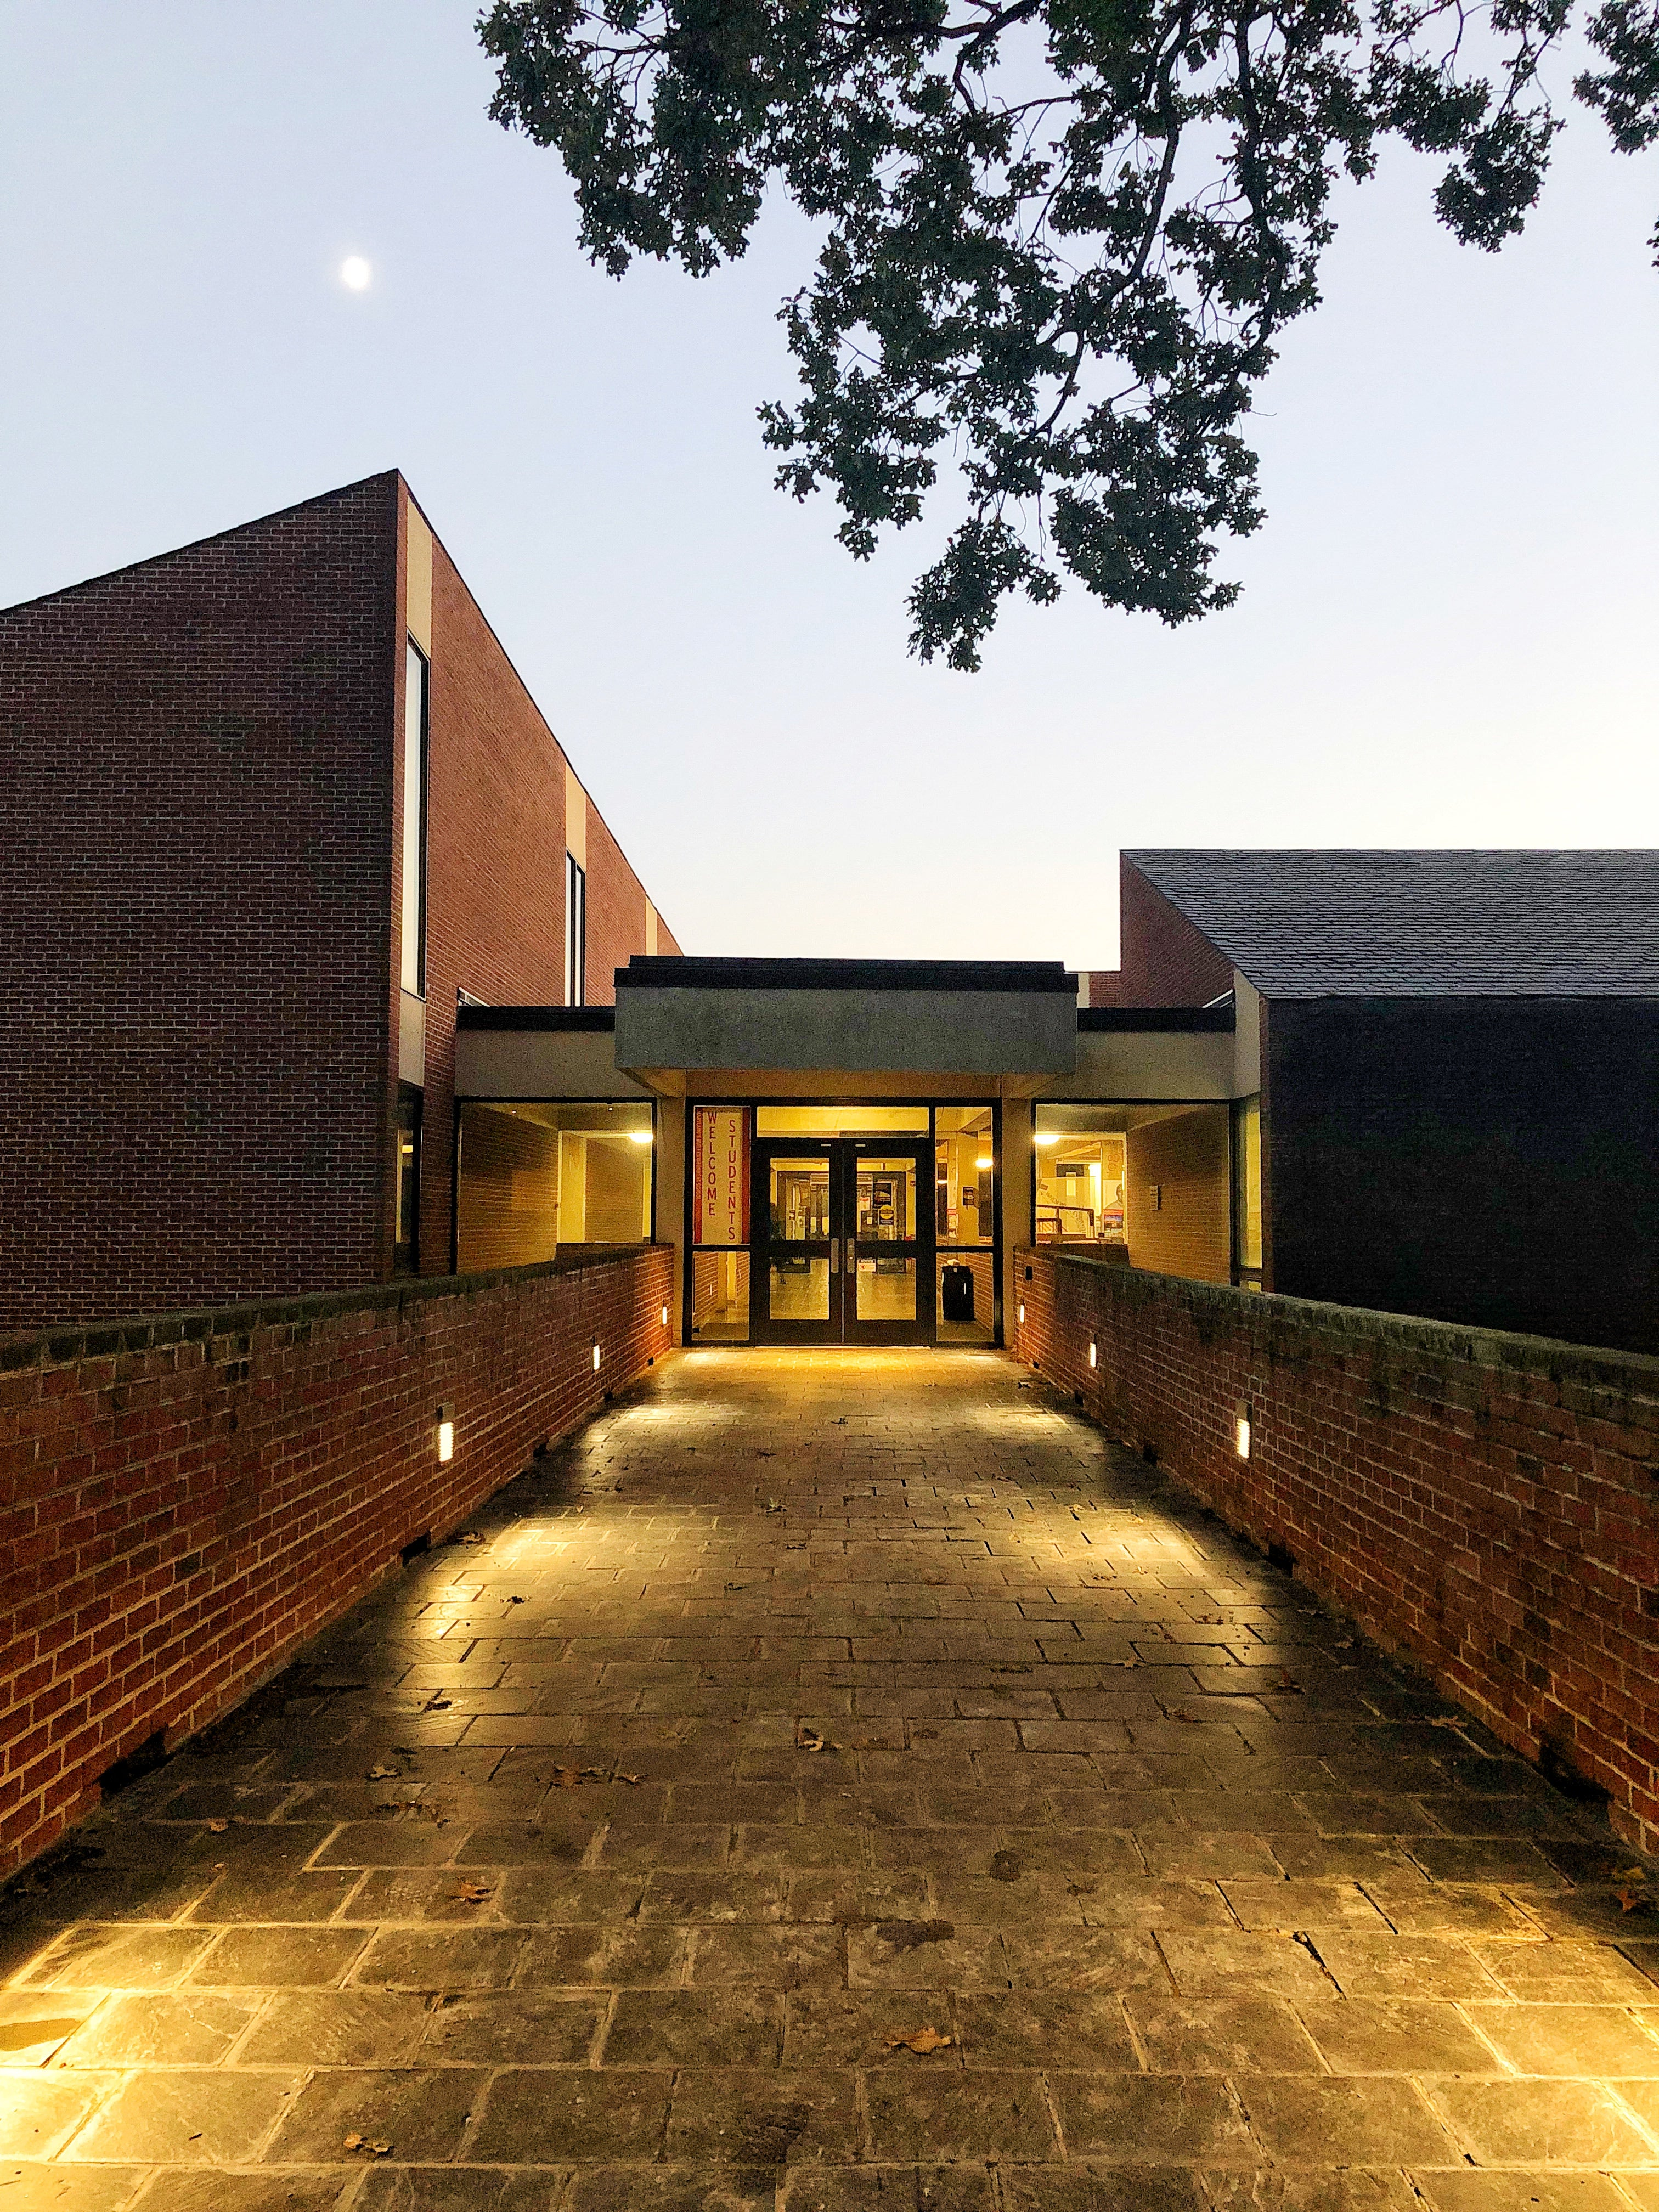 UMD Architecture Building at twilight. Photo by Betsy Nolen Petrusic.